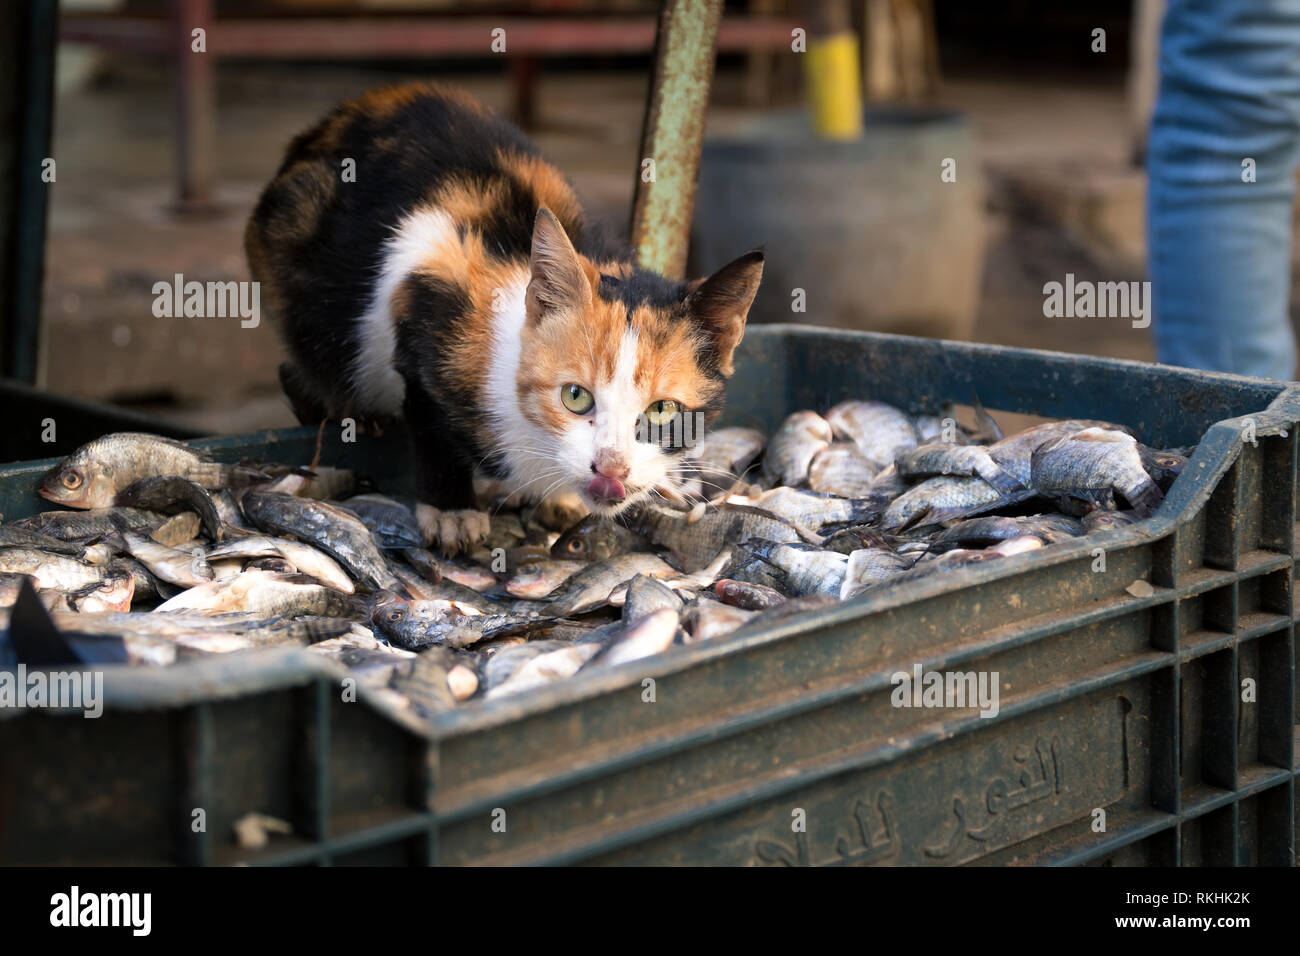 A beautiful small cat stands on a box of small fish ready to steal one at a Alexandria street market in Egypt - Stock Image